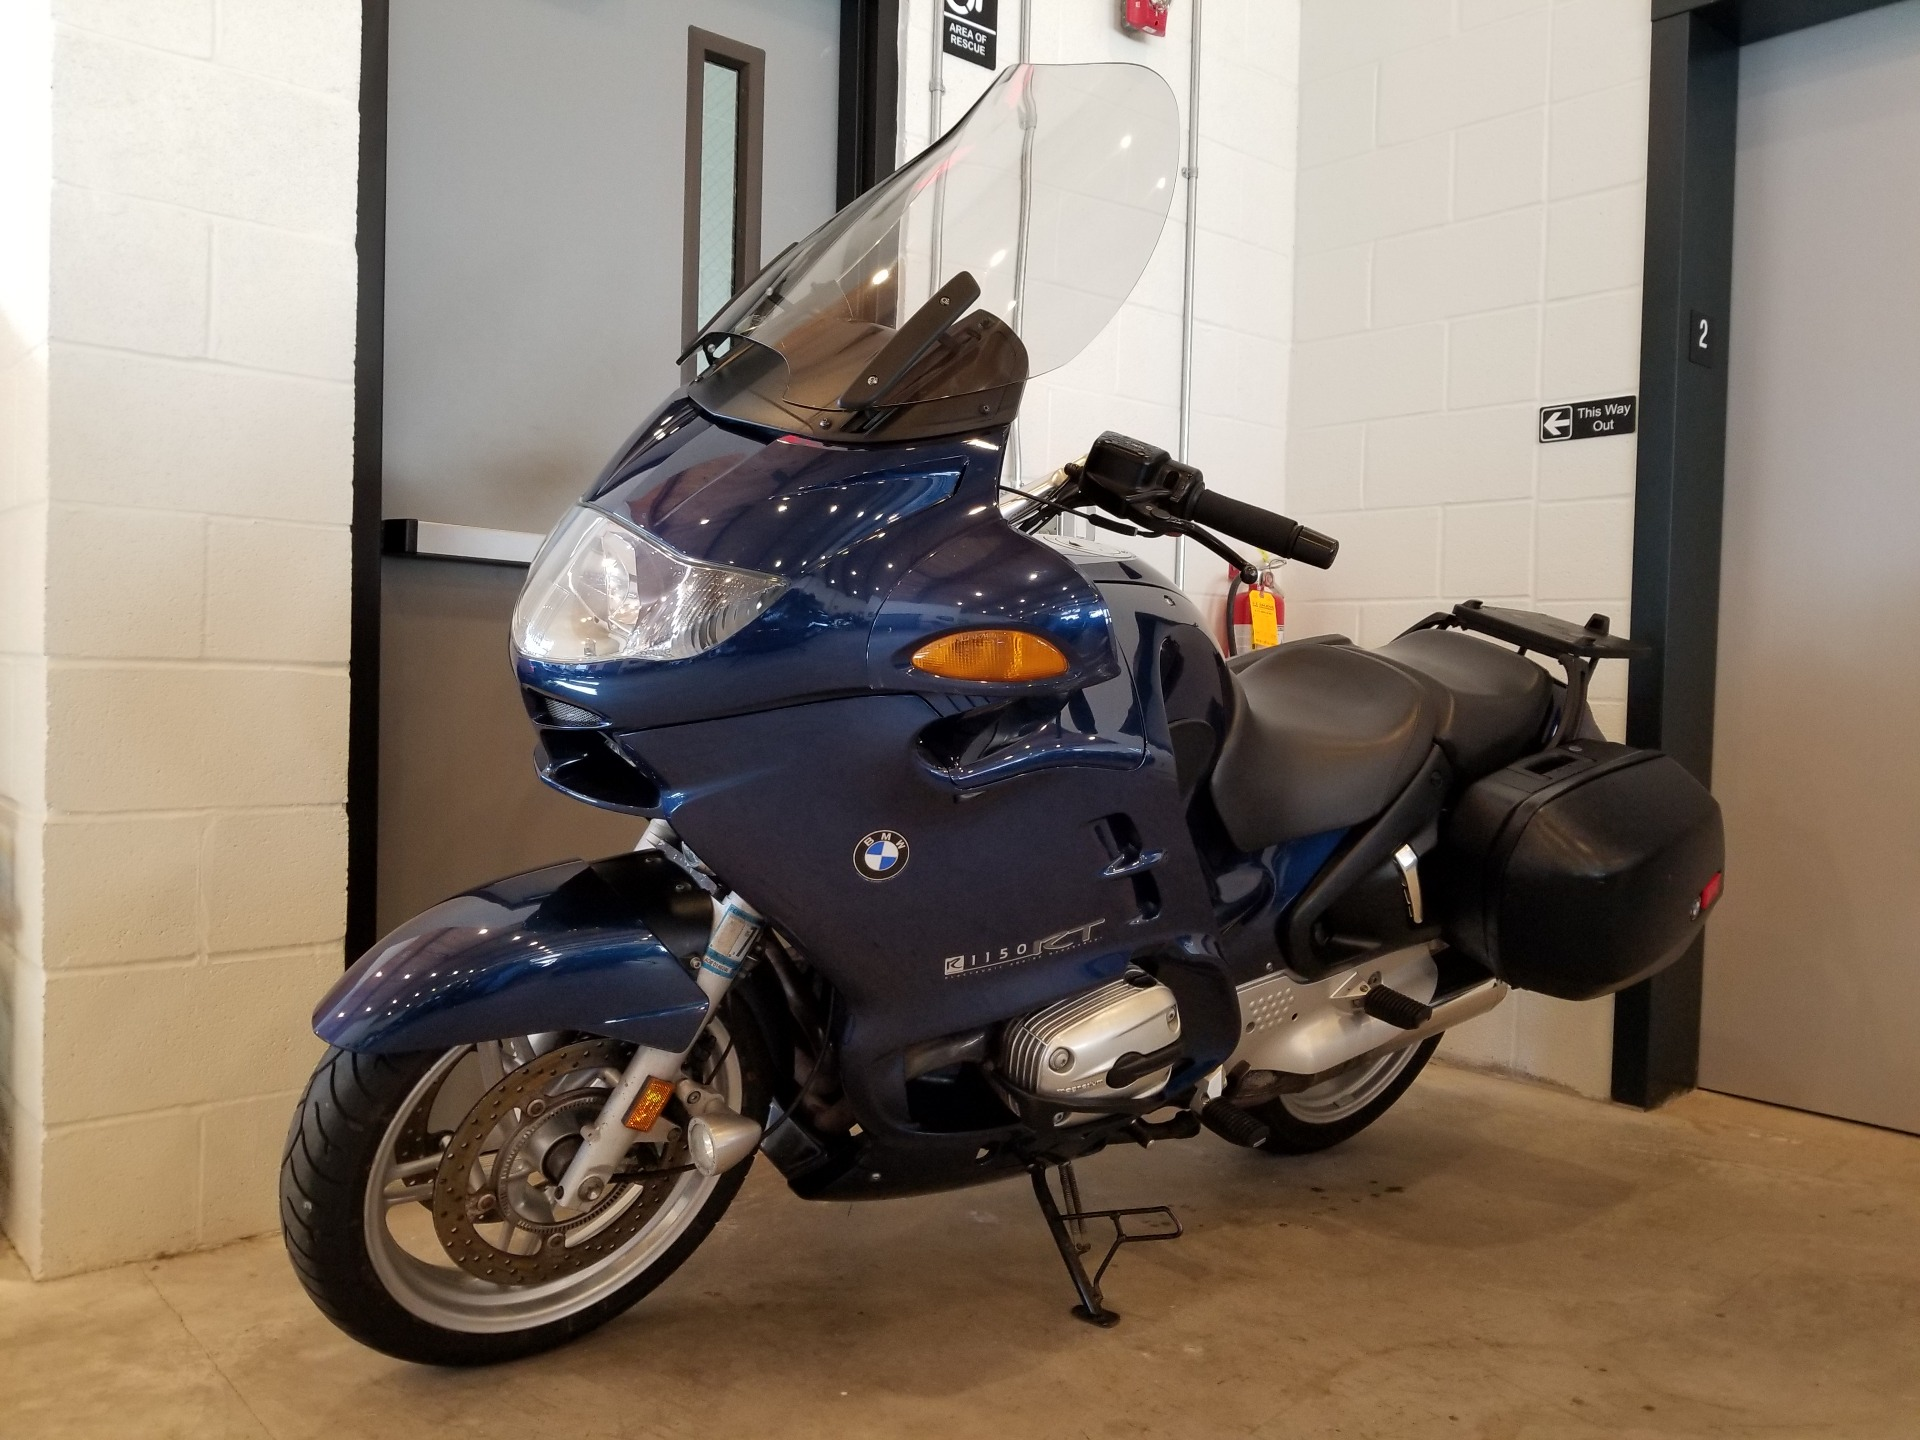 hight resolution of 2004 bmw r 1150 rt abs in port clinton pennsylvania photo 5